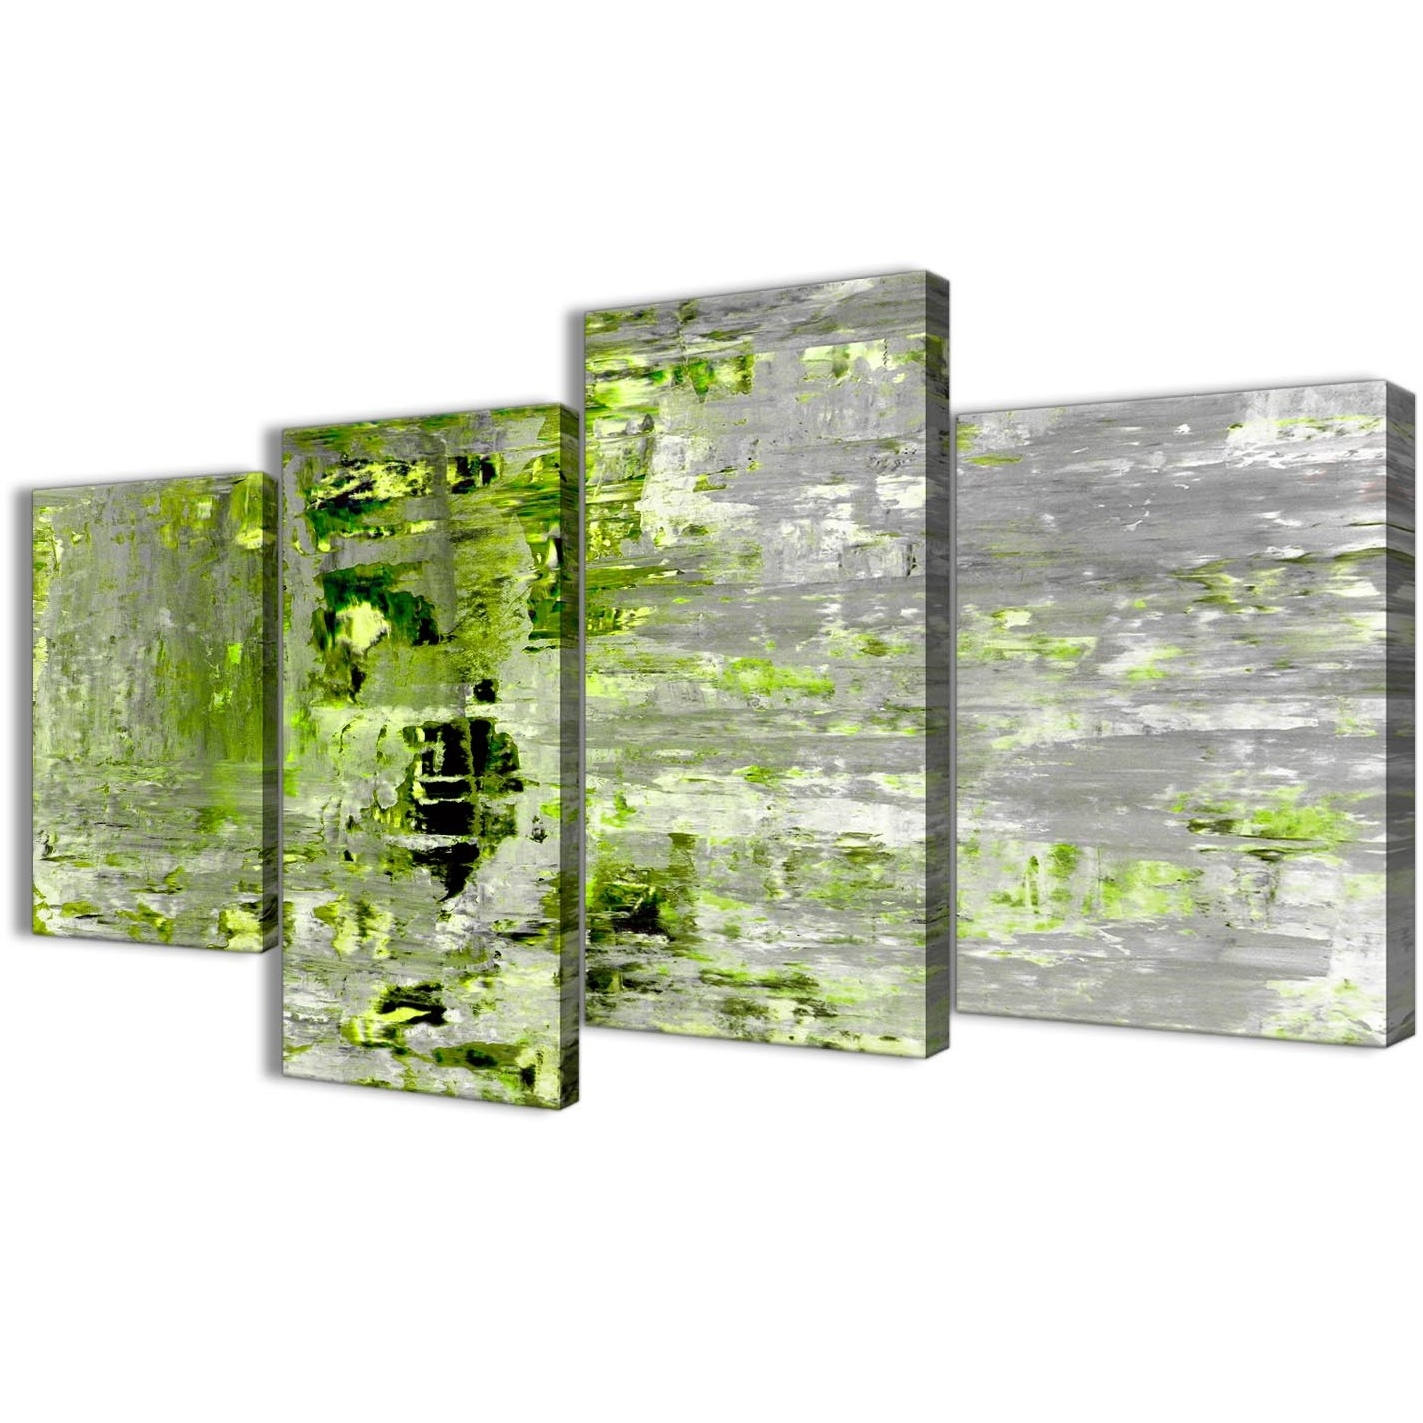 Large Lime Green Grey Abstract Painting Wall Art Print Canvas Within Most Recent Lime Green Abstract Wall Art (View 7 of 15)